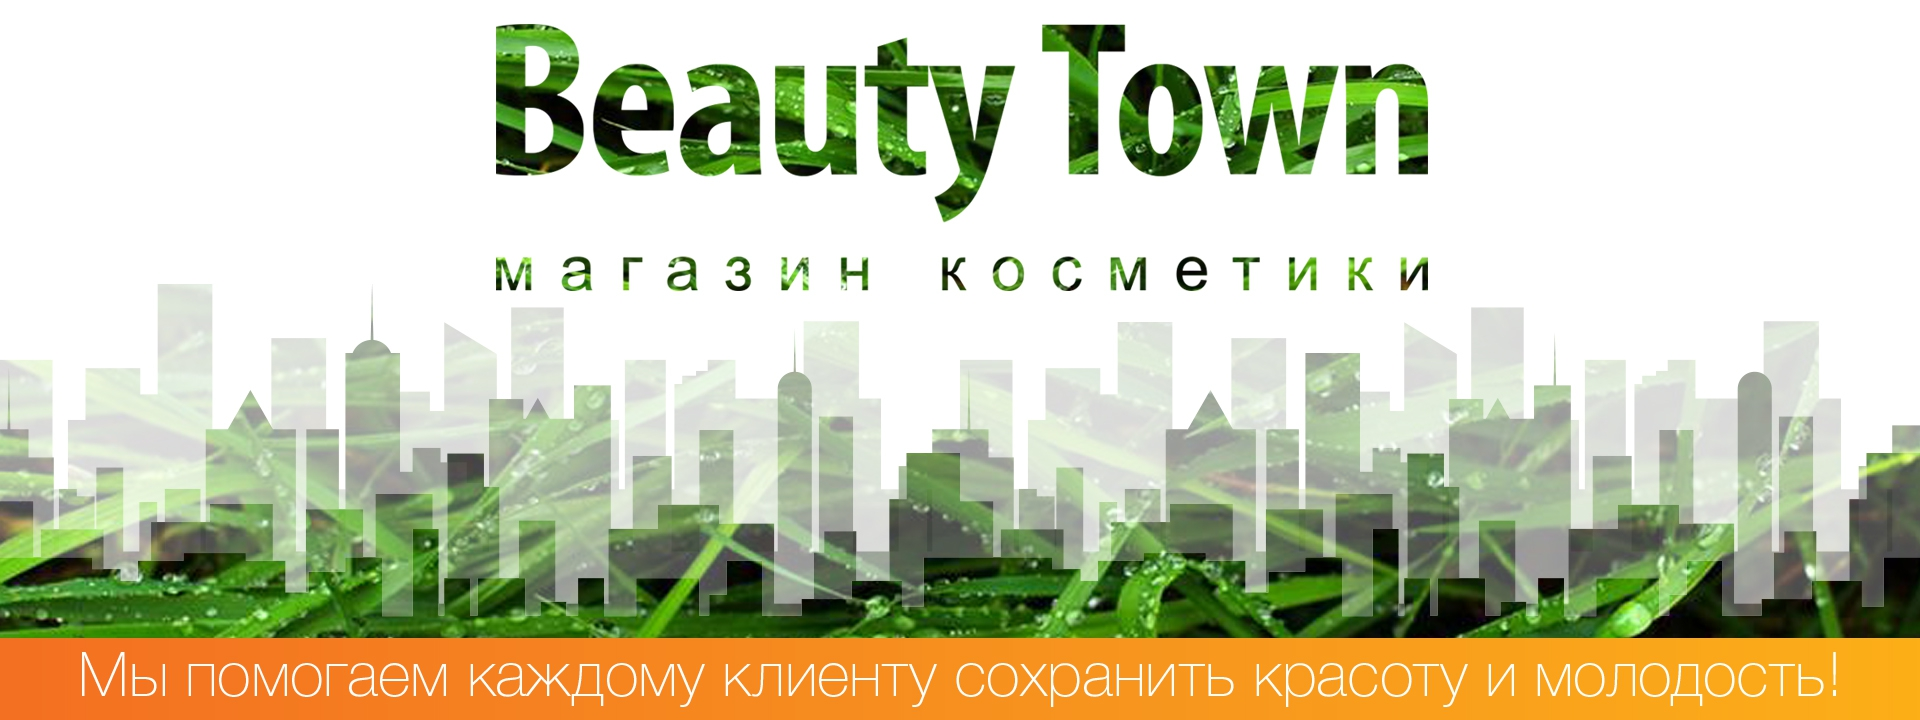 BeautyTown.com.ua _slide_0